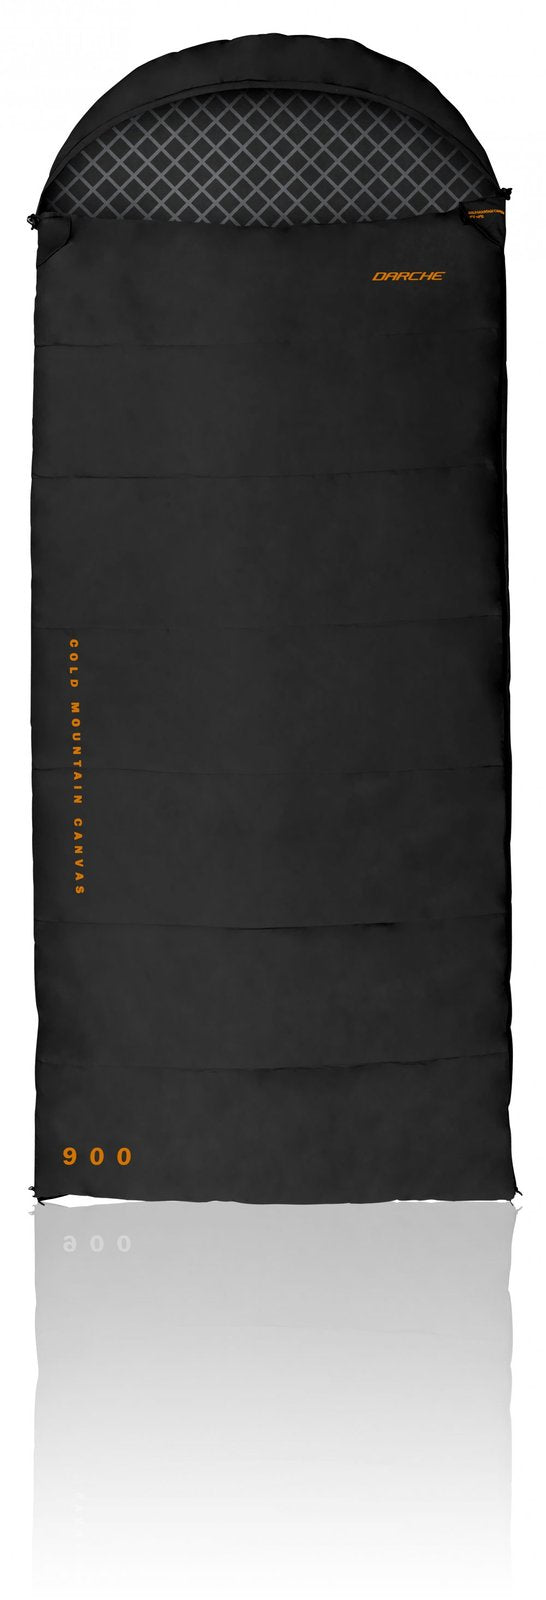 SLEEPING BAG 23°F(-5°C) DARCHE MOUNTAIN CANVAS 900 WITH DUAL ZIP